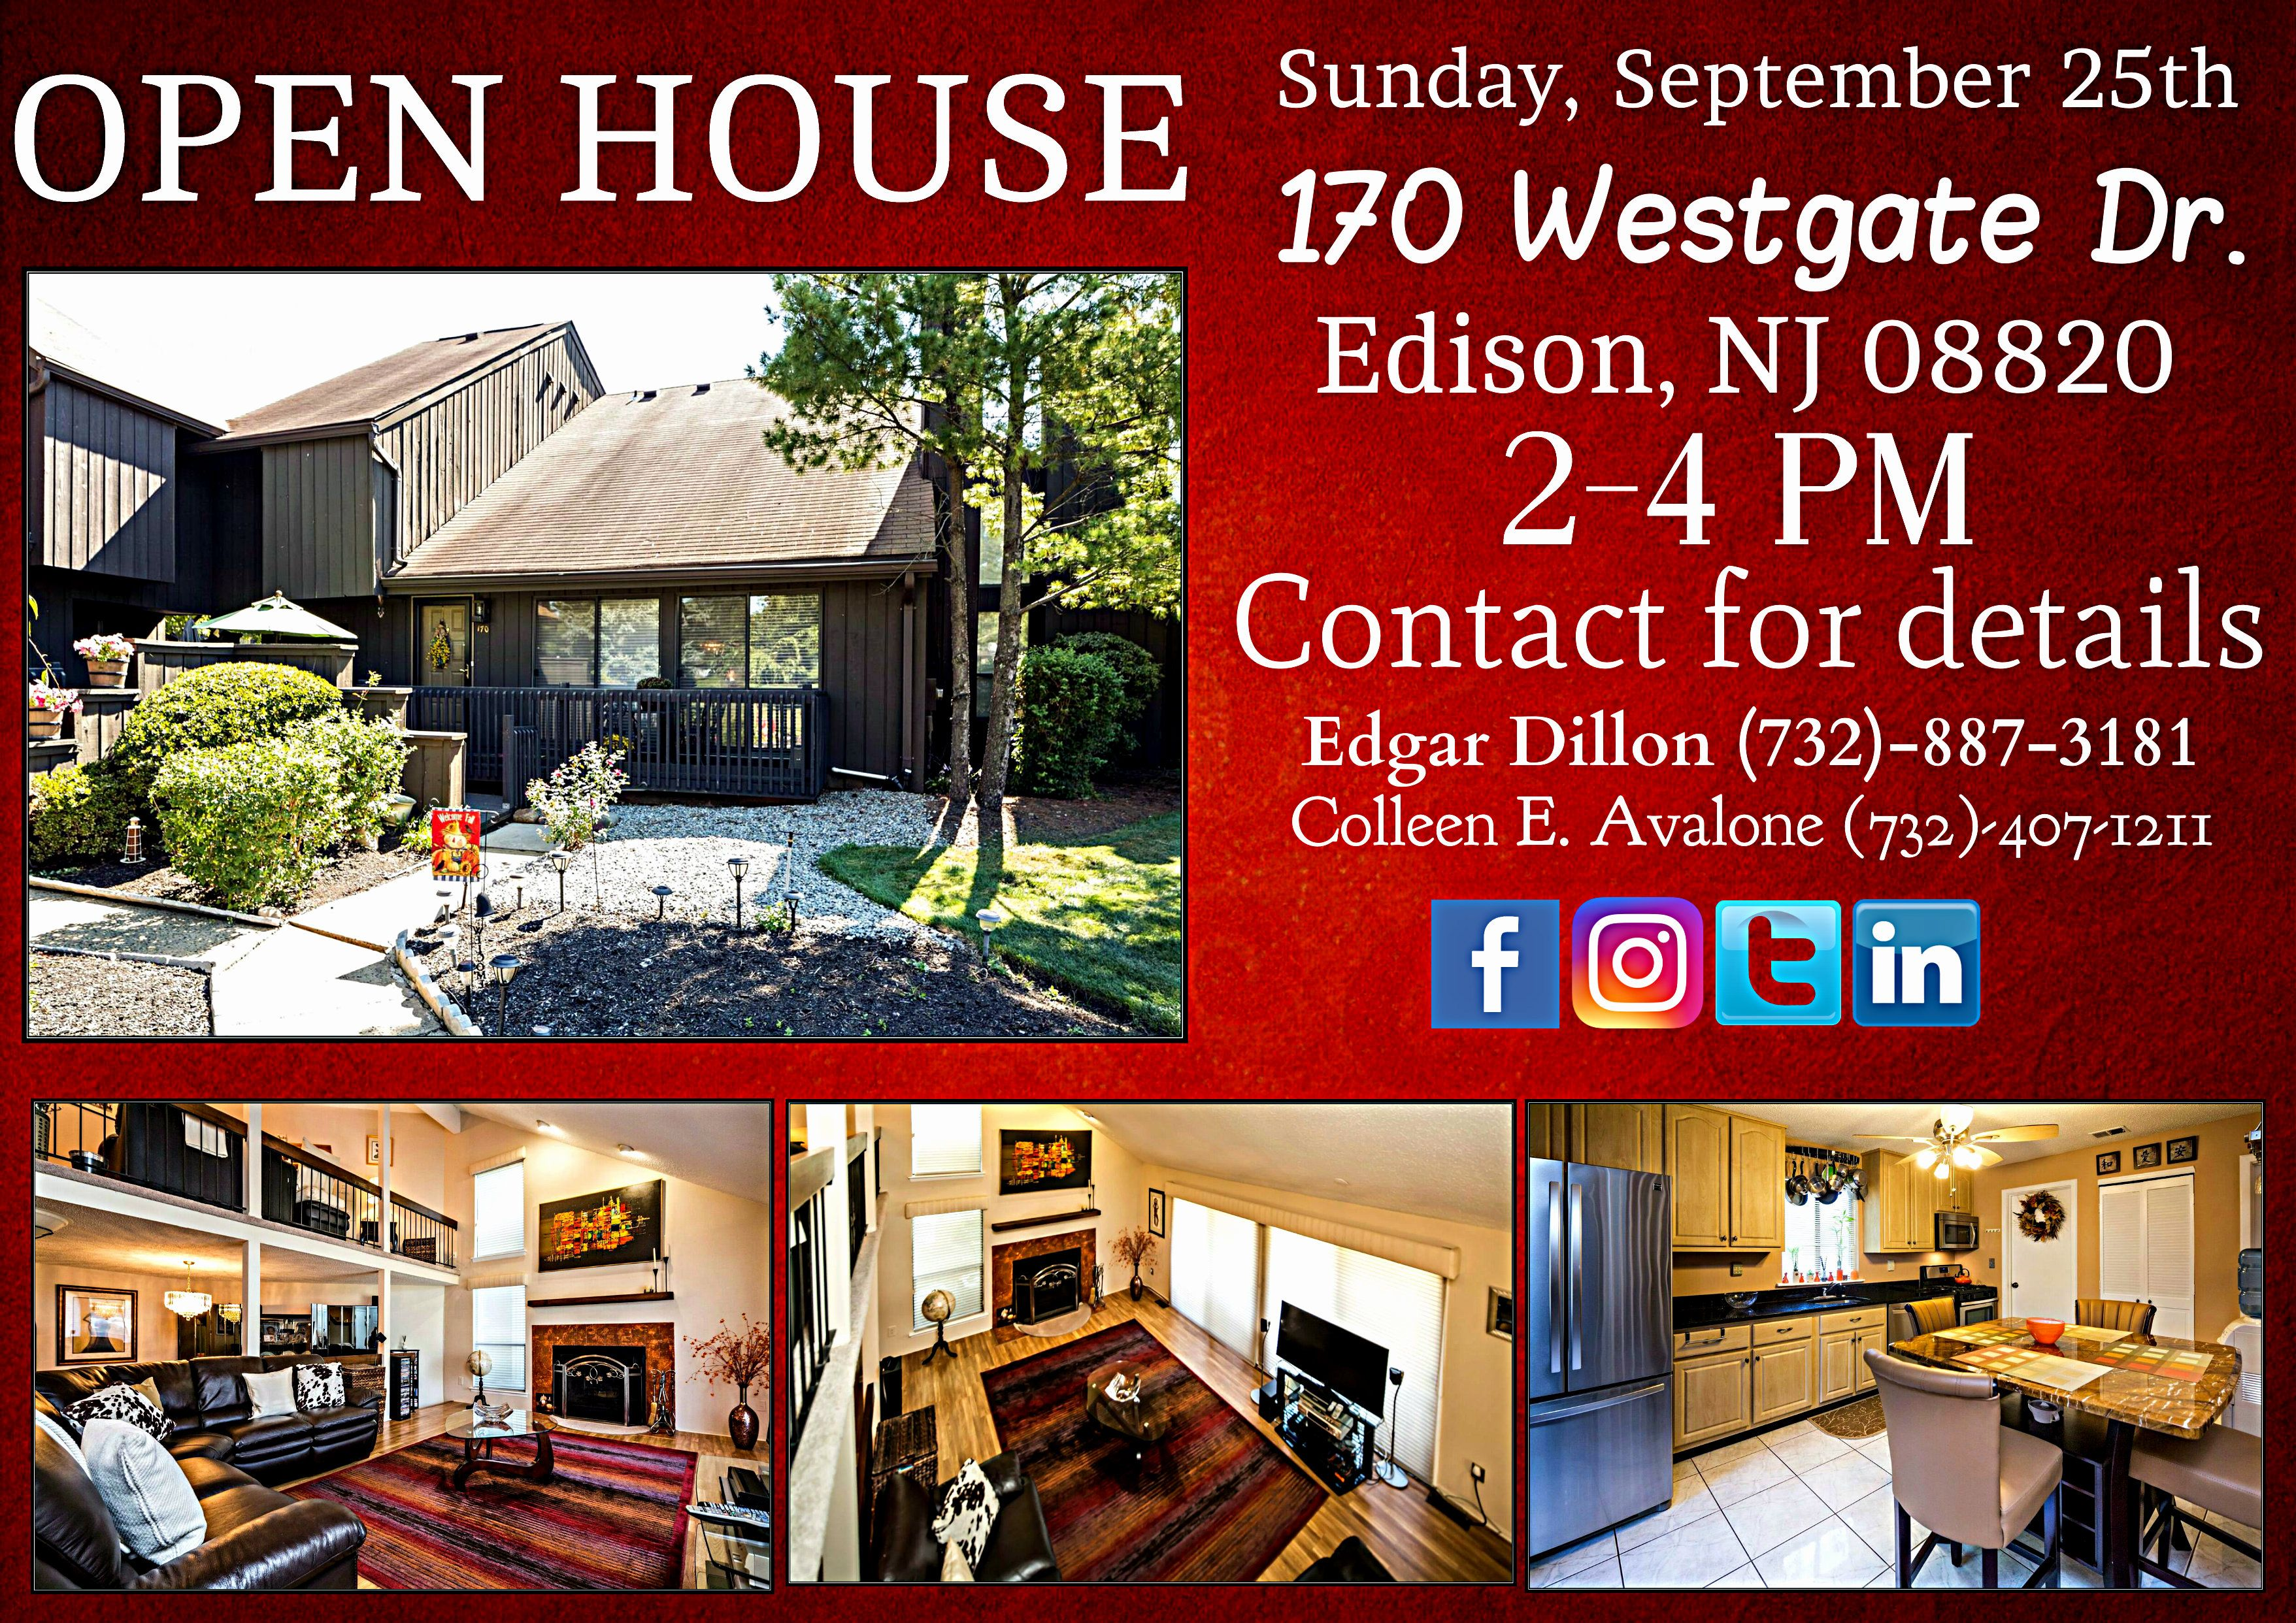 Open House This Sunday In Edison Nj Contact Me For Details